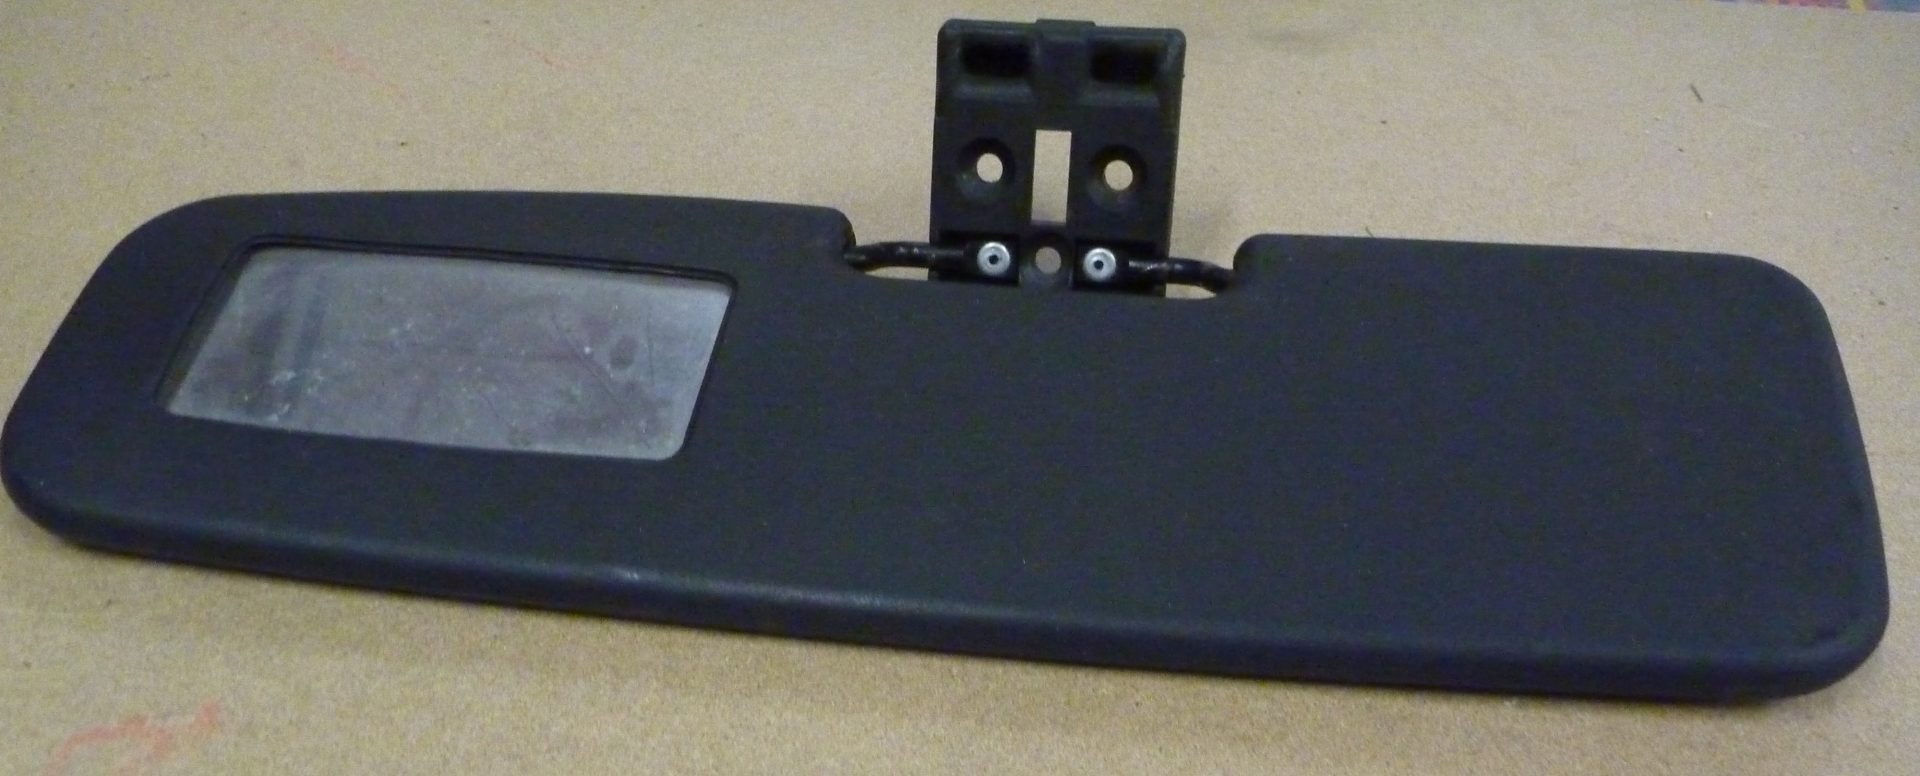 Lotus Elan M100 Passenger Sun Visor from Specialist Vehicle Solutions 4a626a95946